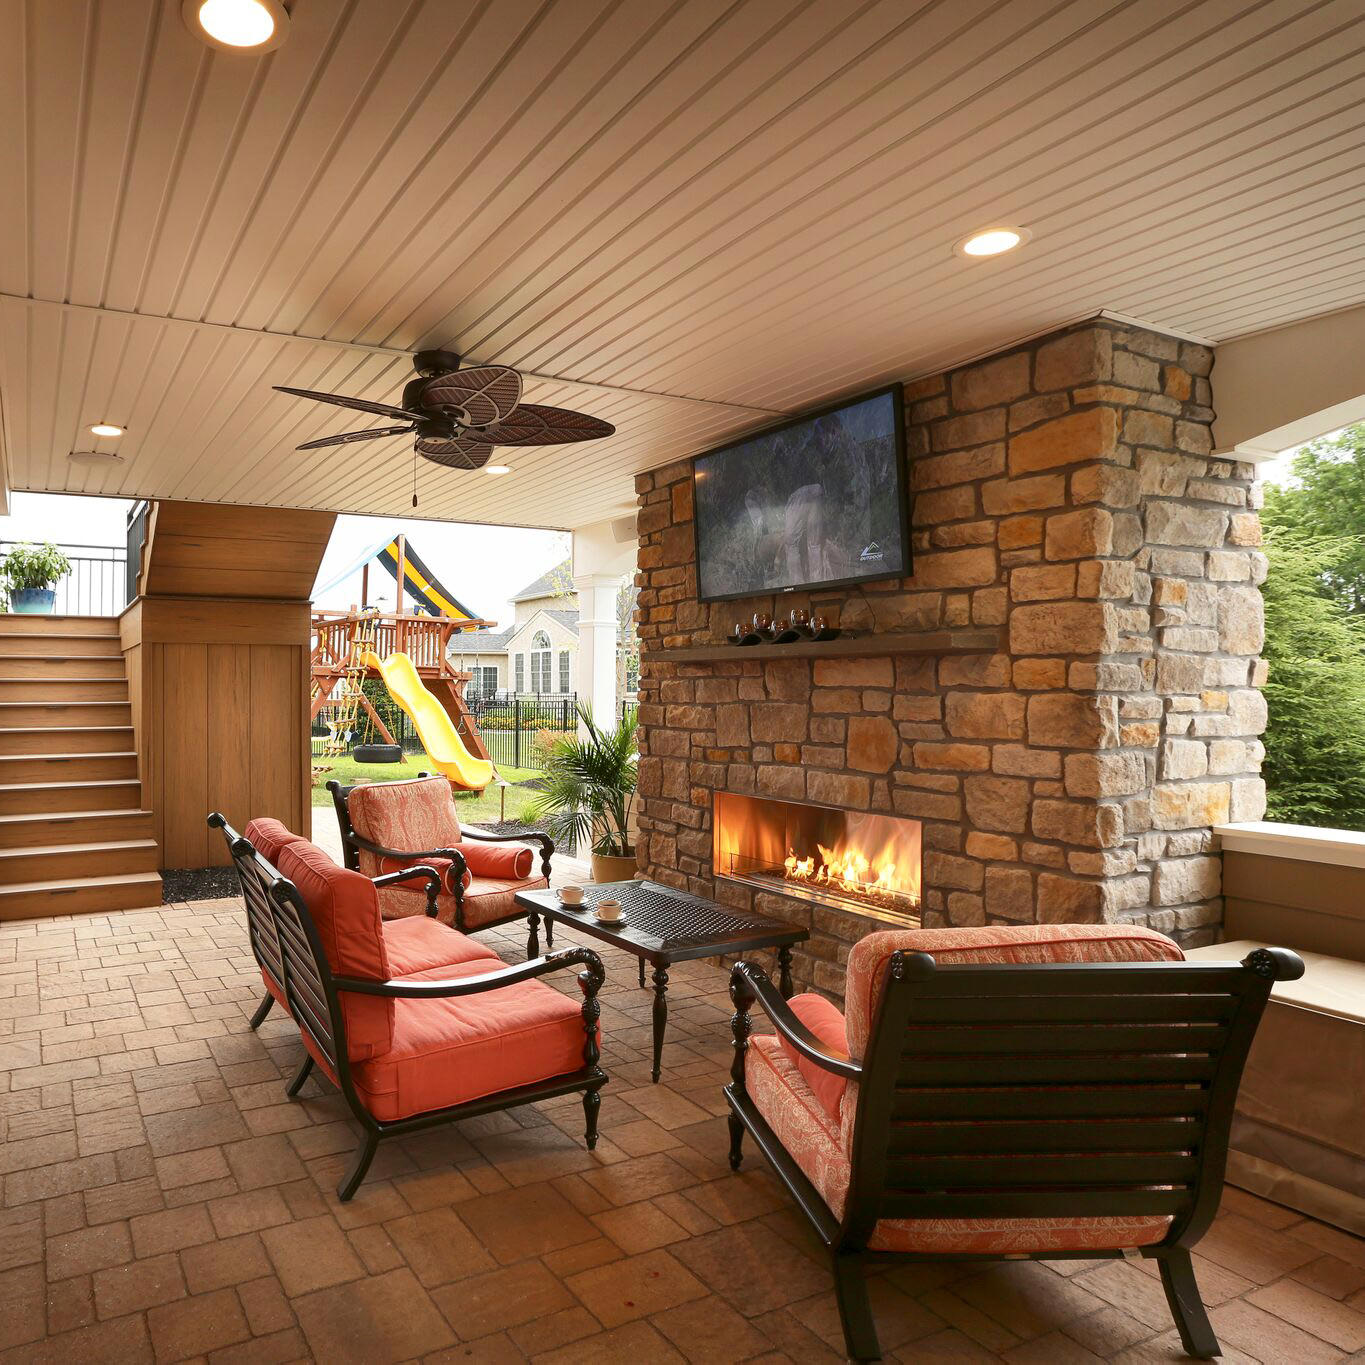 Dry under-deck systems provide added lounge and entertainment areas to your outdoor living plan. Read more about this Limerick, PA project!